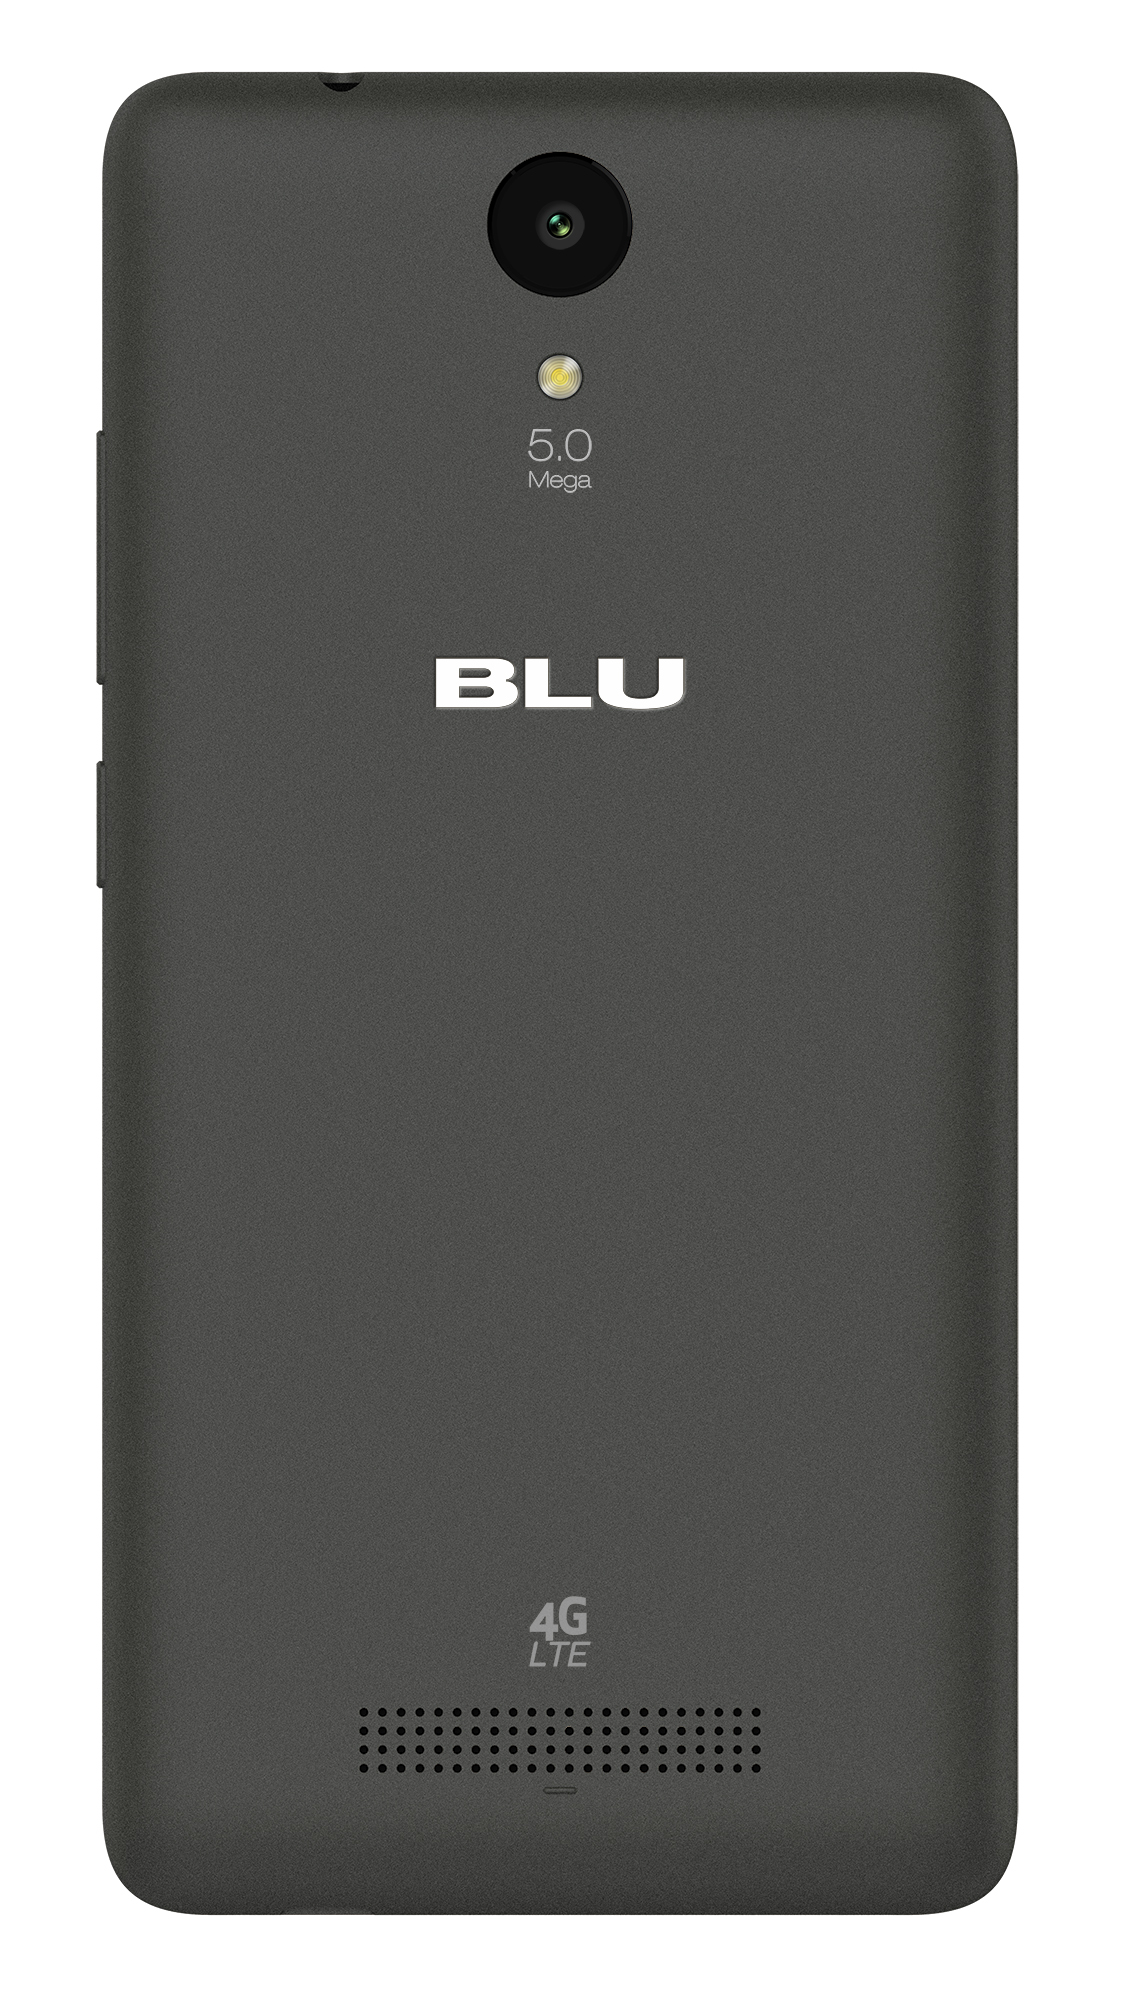 blu studio g hd lte unlocked gsm dual sim quadcore android. Black Bedroom Furniture Sets. Home Design Ideas